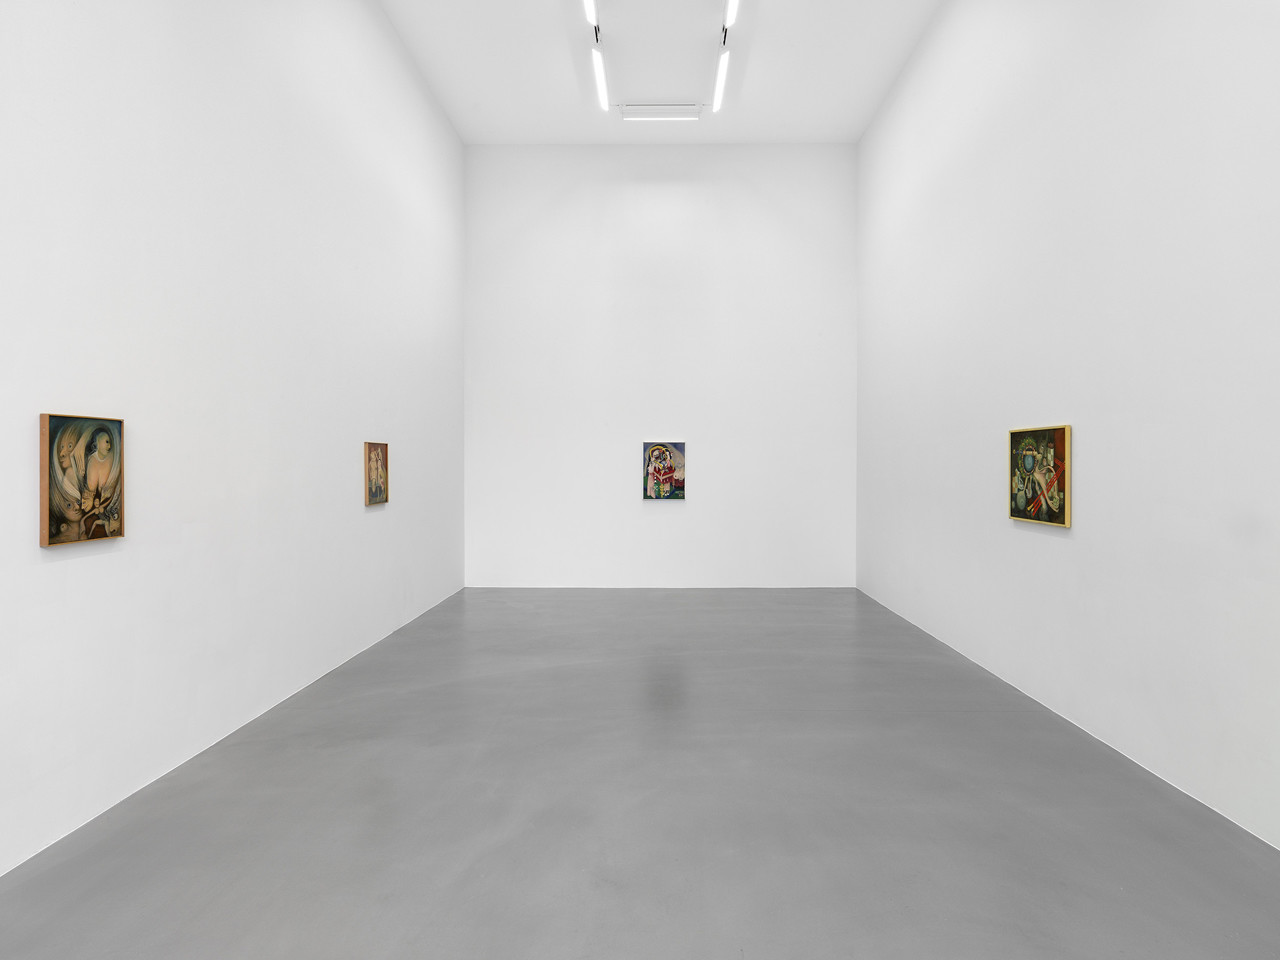 "<div class=""artwork_caption""><p>Installation View, 2016</p></div>"